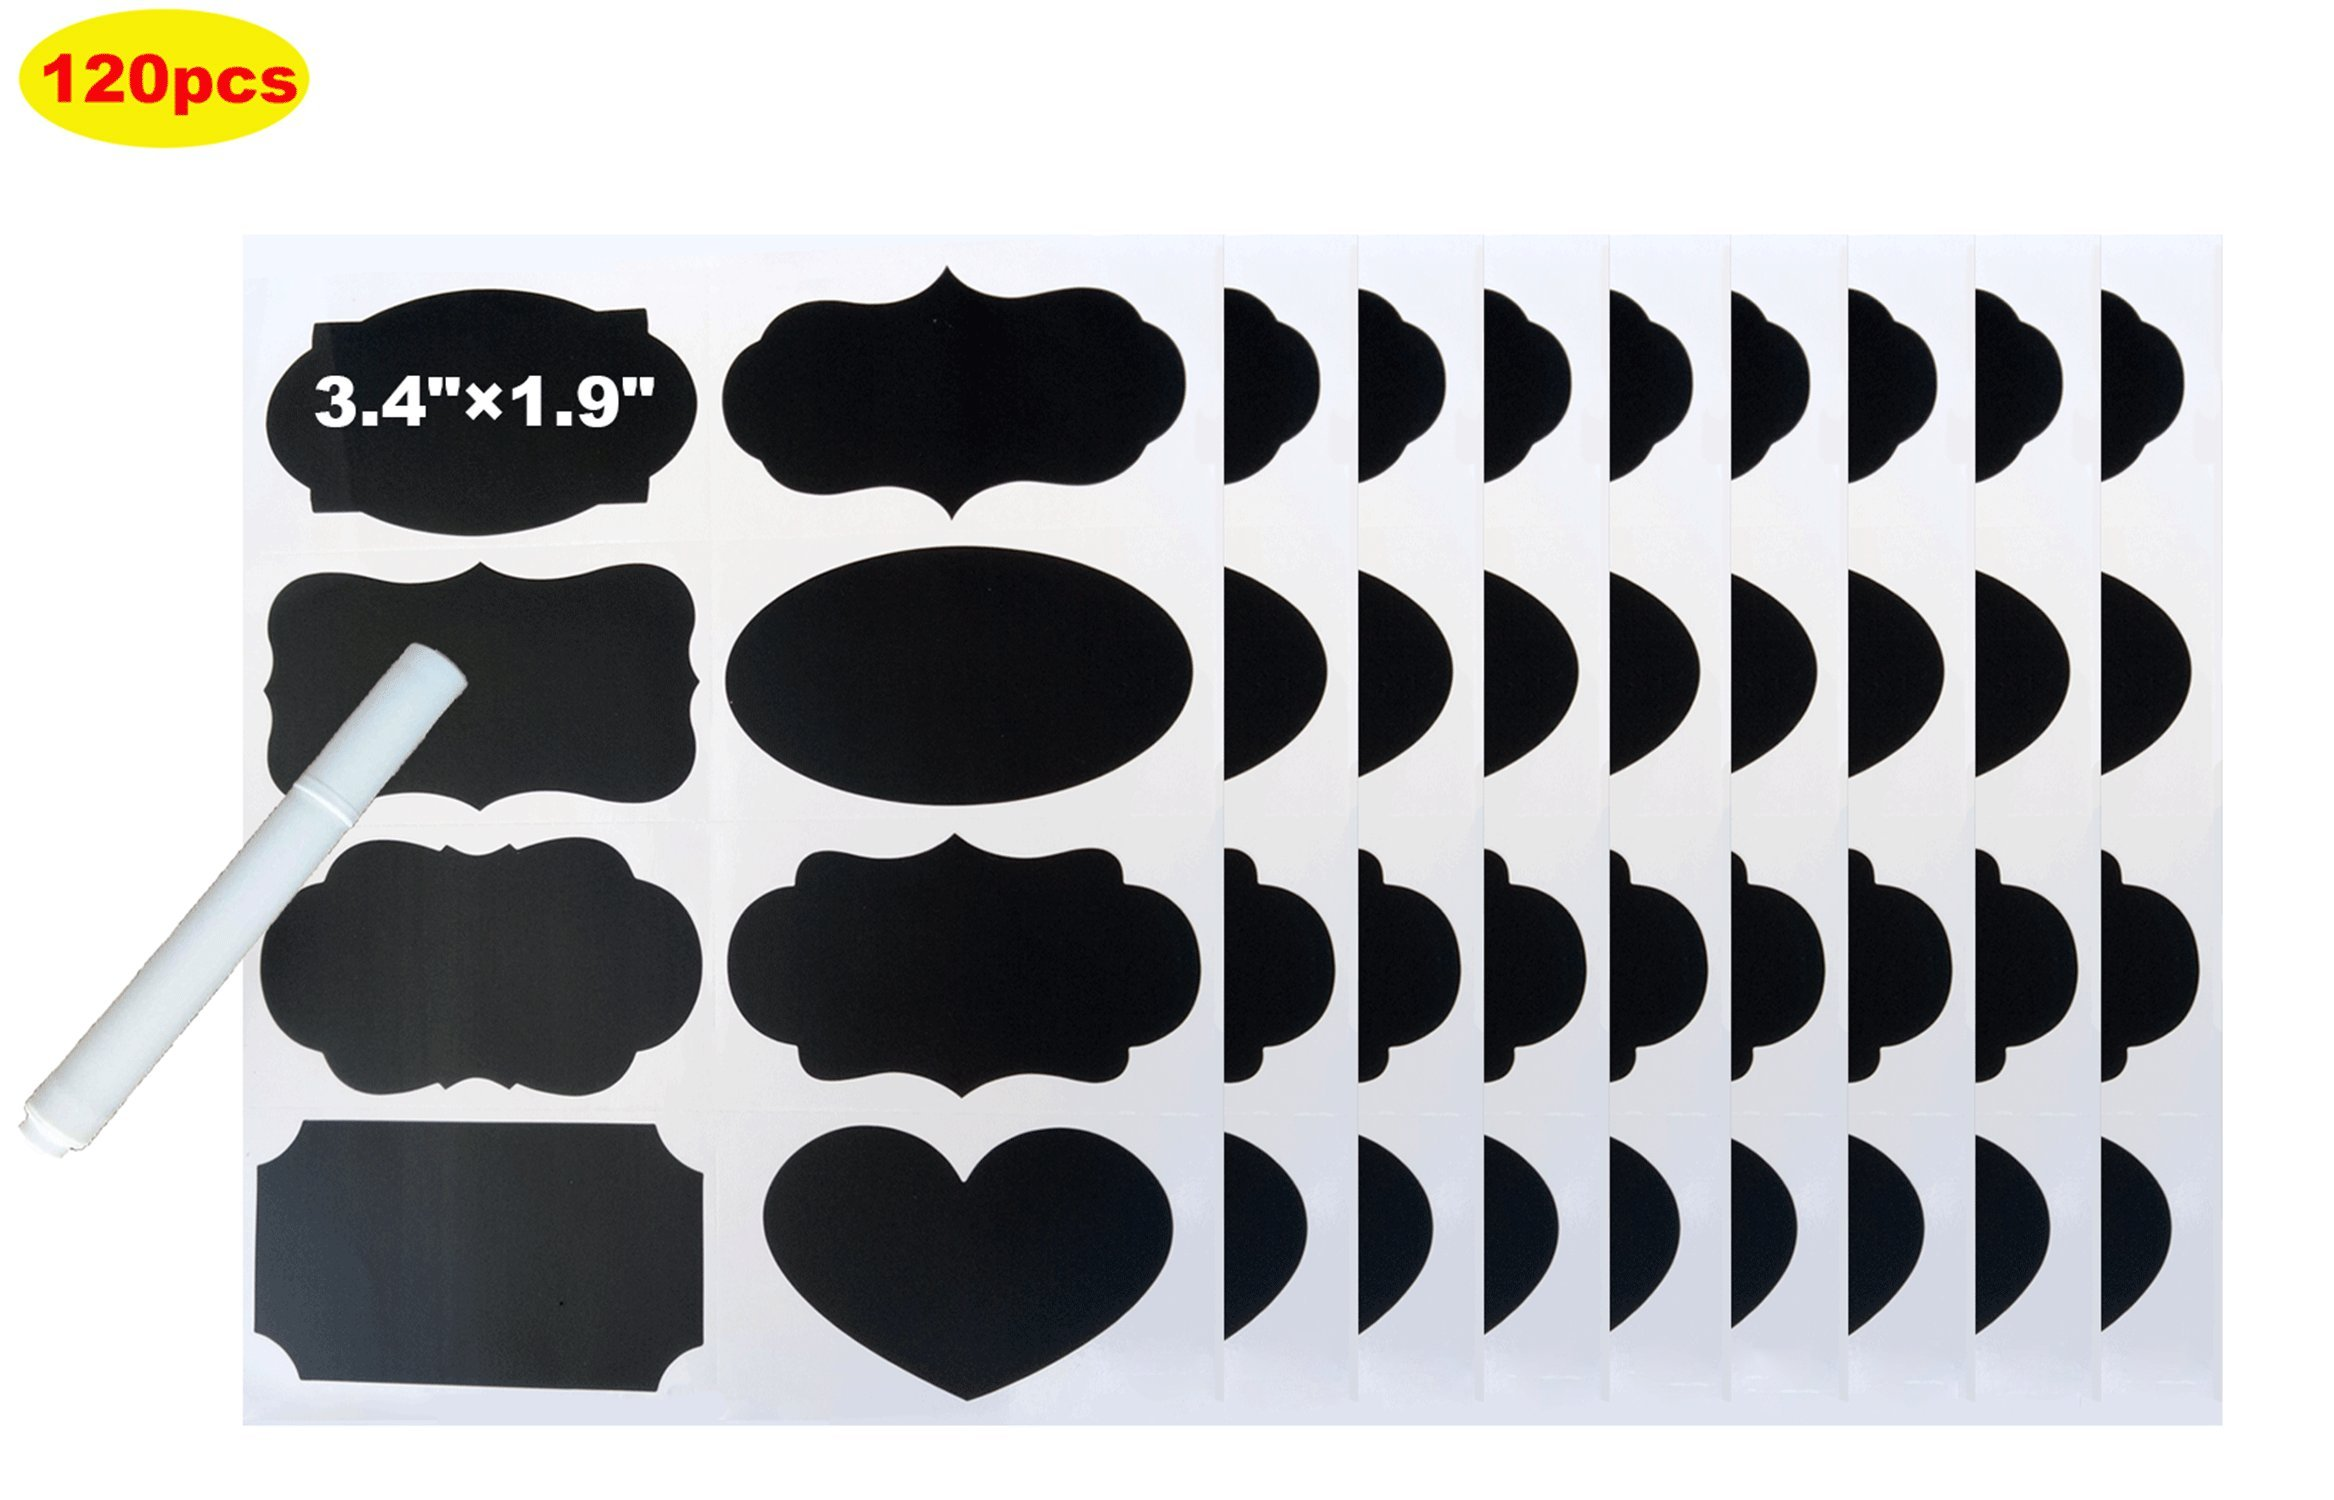 Chalkboard Labels, Pantry and Storage Chalk Stickers for Mason Jars,Spice, Glass, Bottles, Containers & Canisters, 120pcs Large Decorative Reusable Waterproof Blackboard Vinyl Set with 1 Chalk Marker